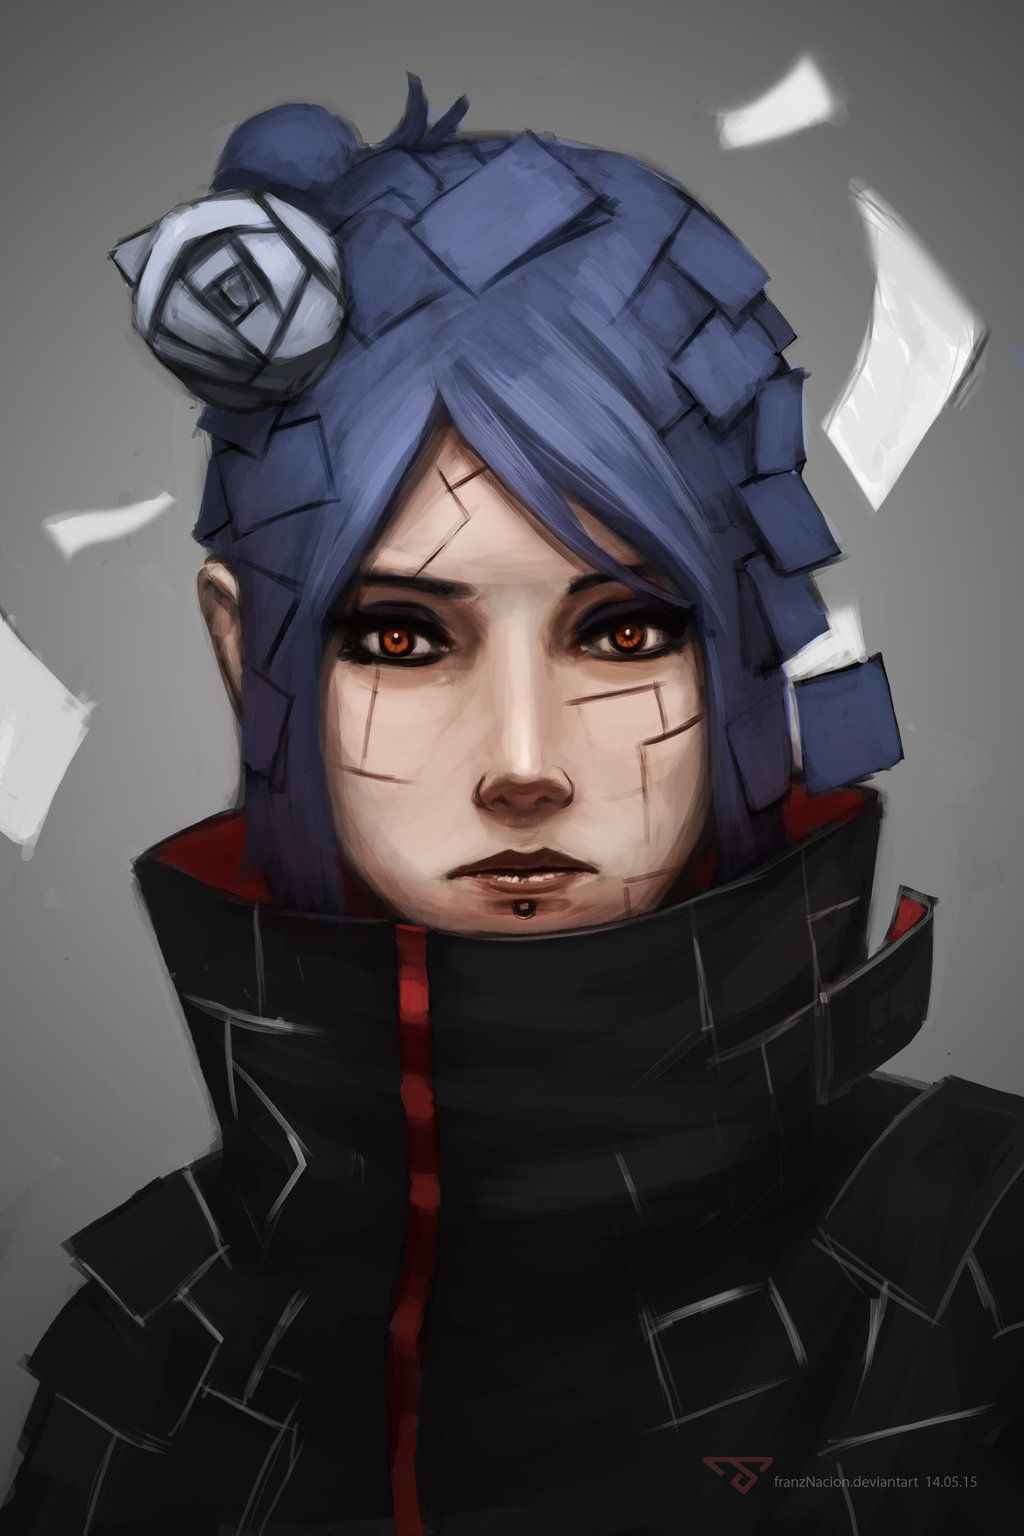 Konan Portrait By Franznacion With Images Anime Konan Anime